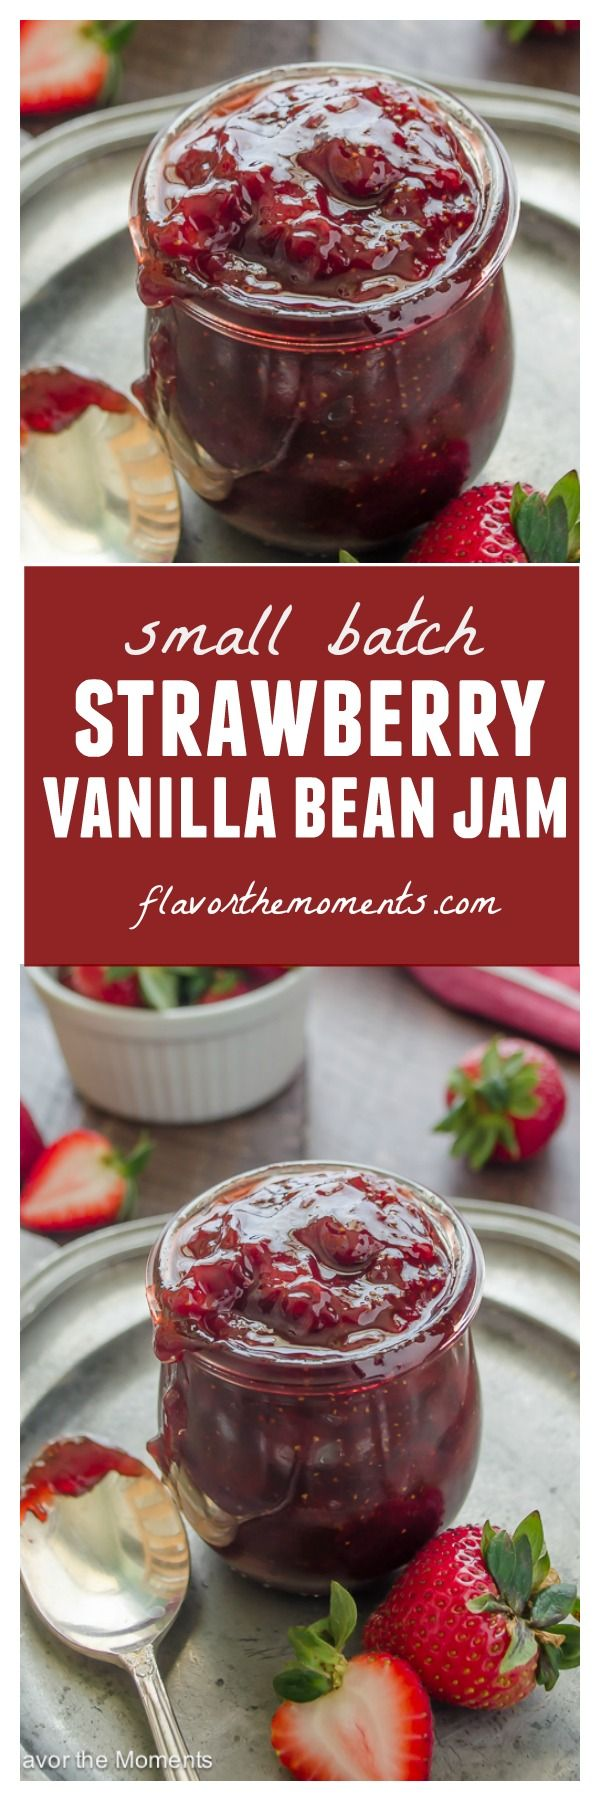 Small Batch Strawberry Vanilla Bean Jam is made with just 4 ingredients, with no refined sugar and minimal effort! @FlavortheMoment